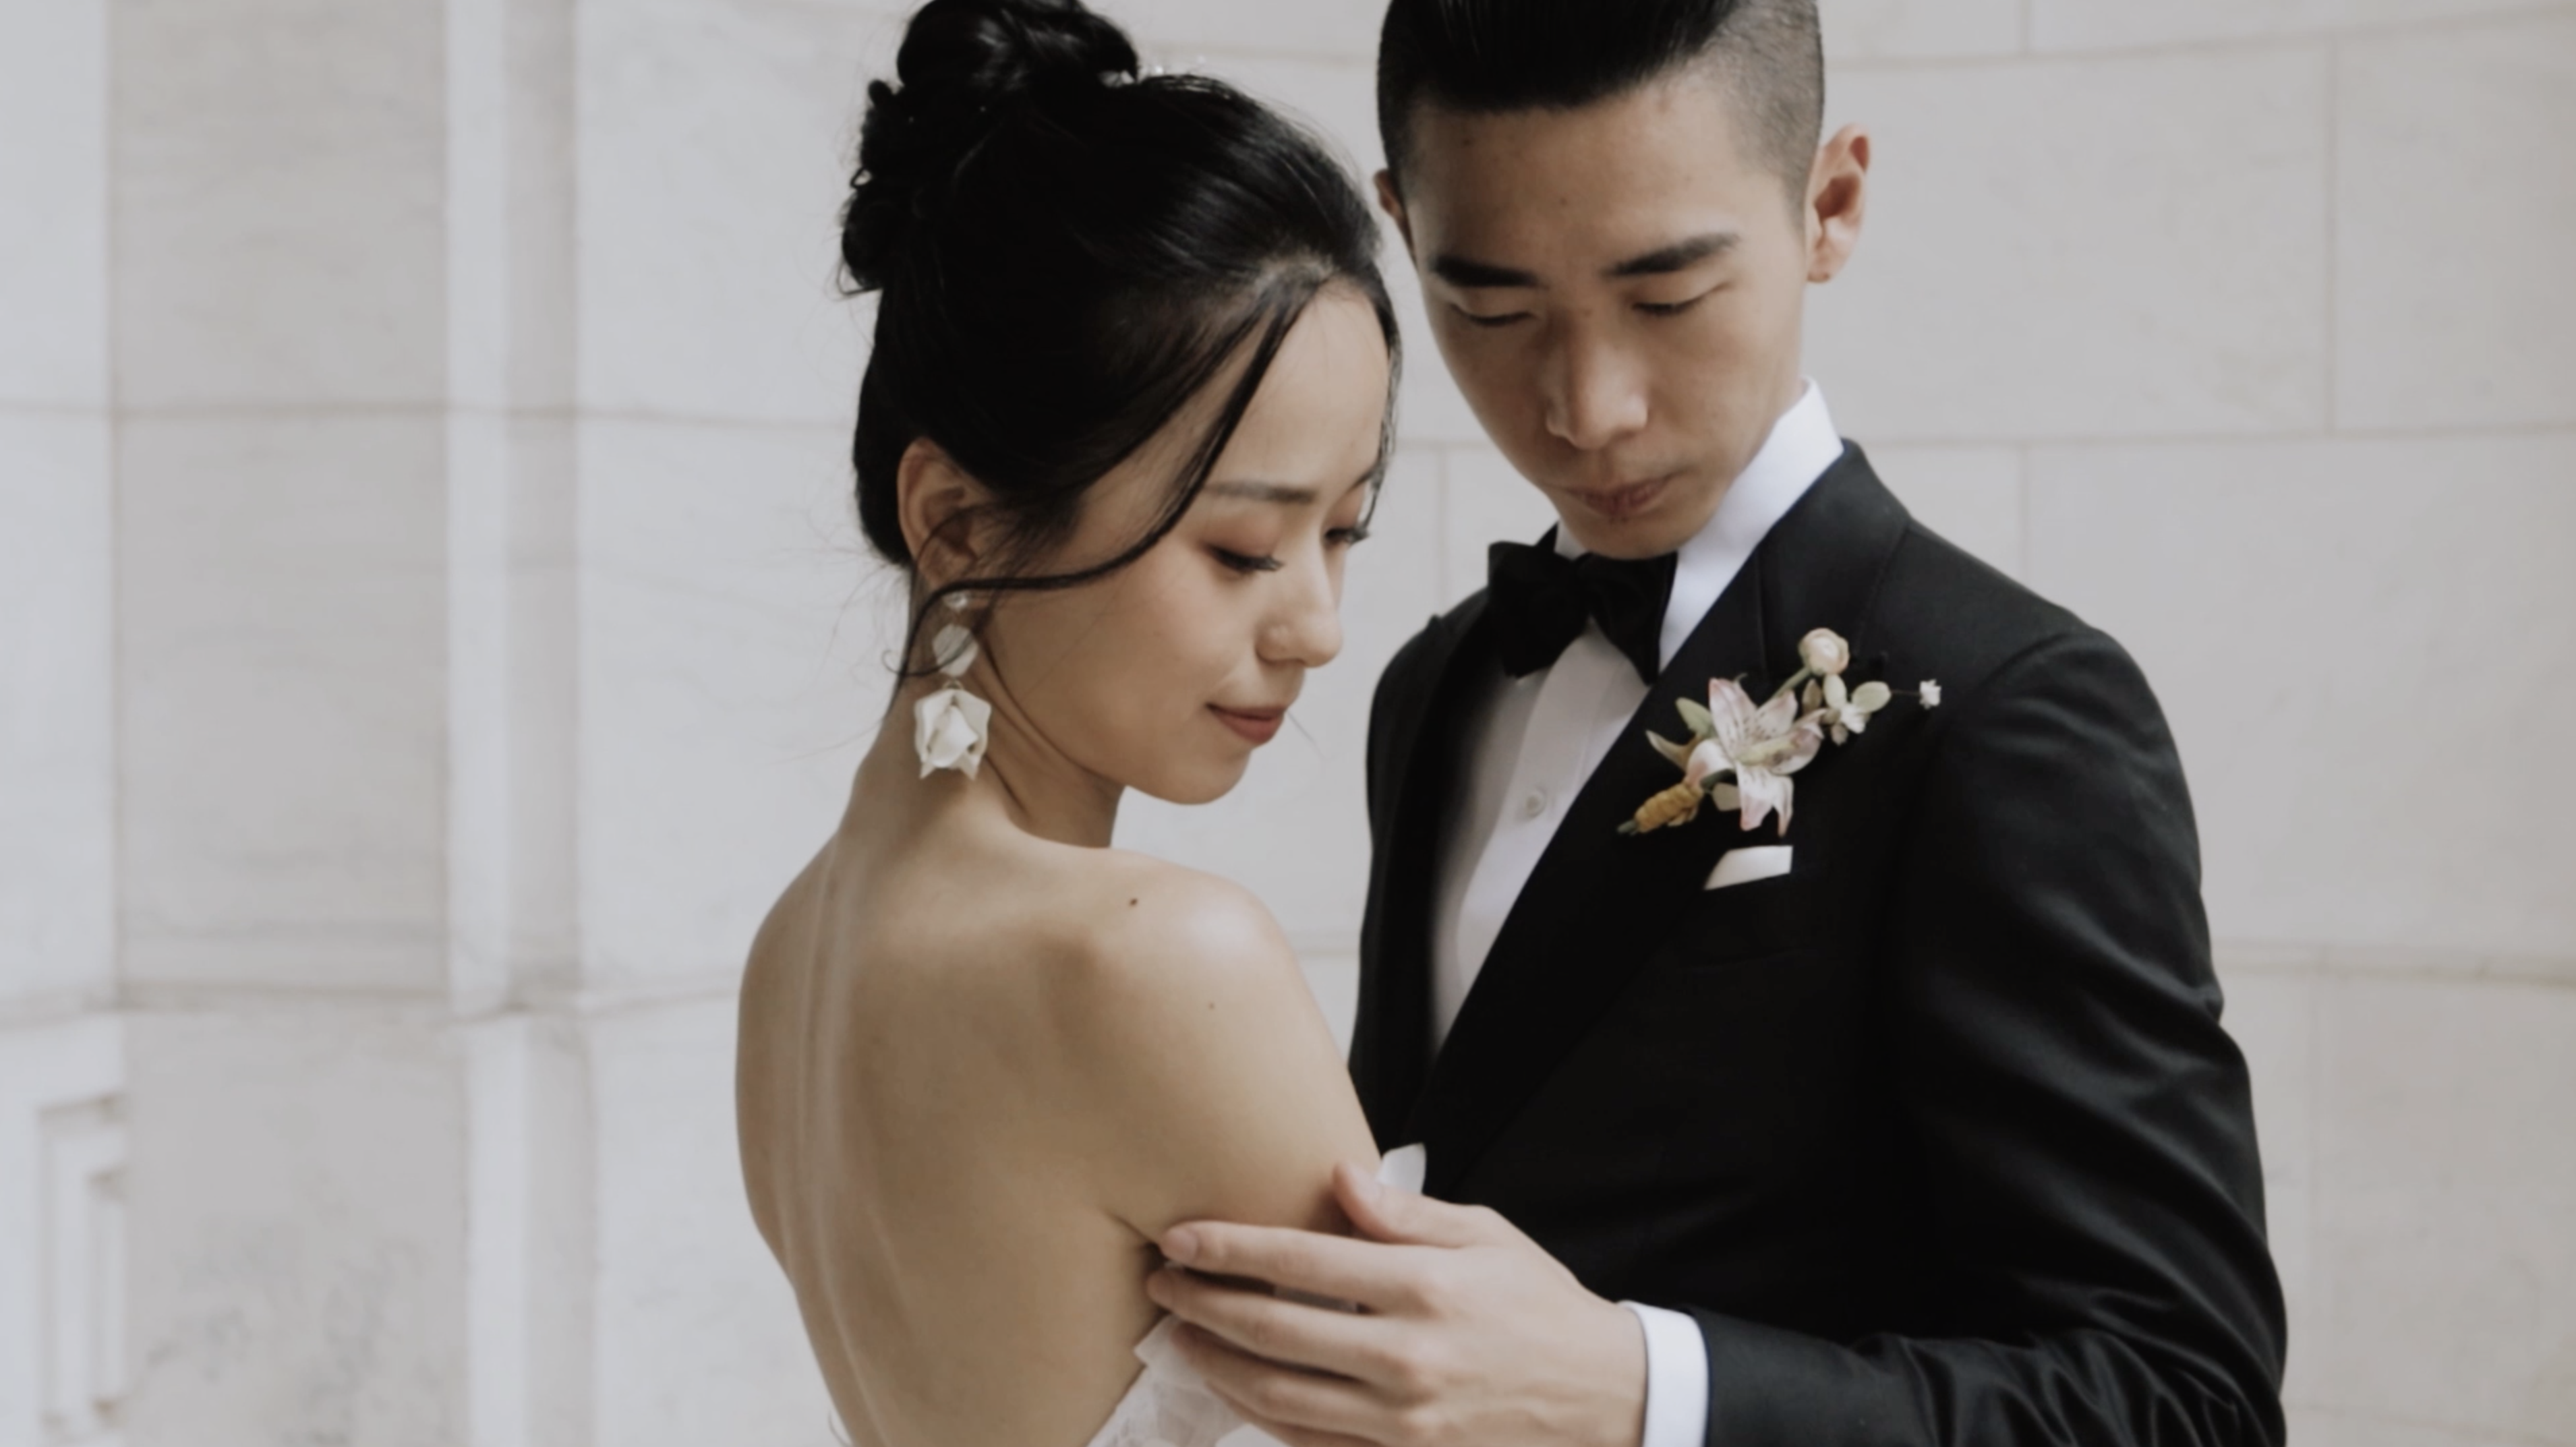 Howard + Jialin | New York, New York | 620 Loft & Garden